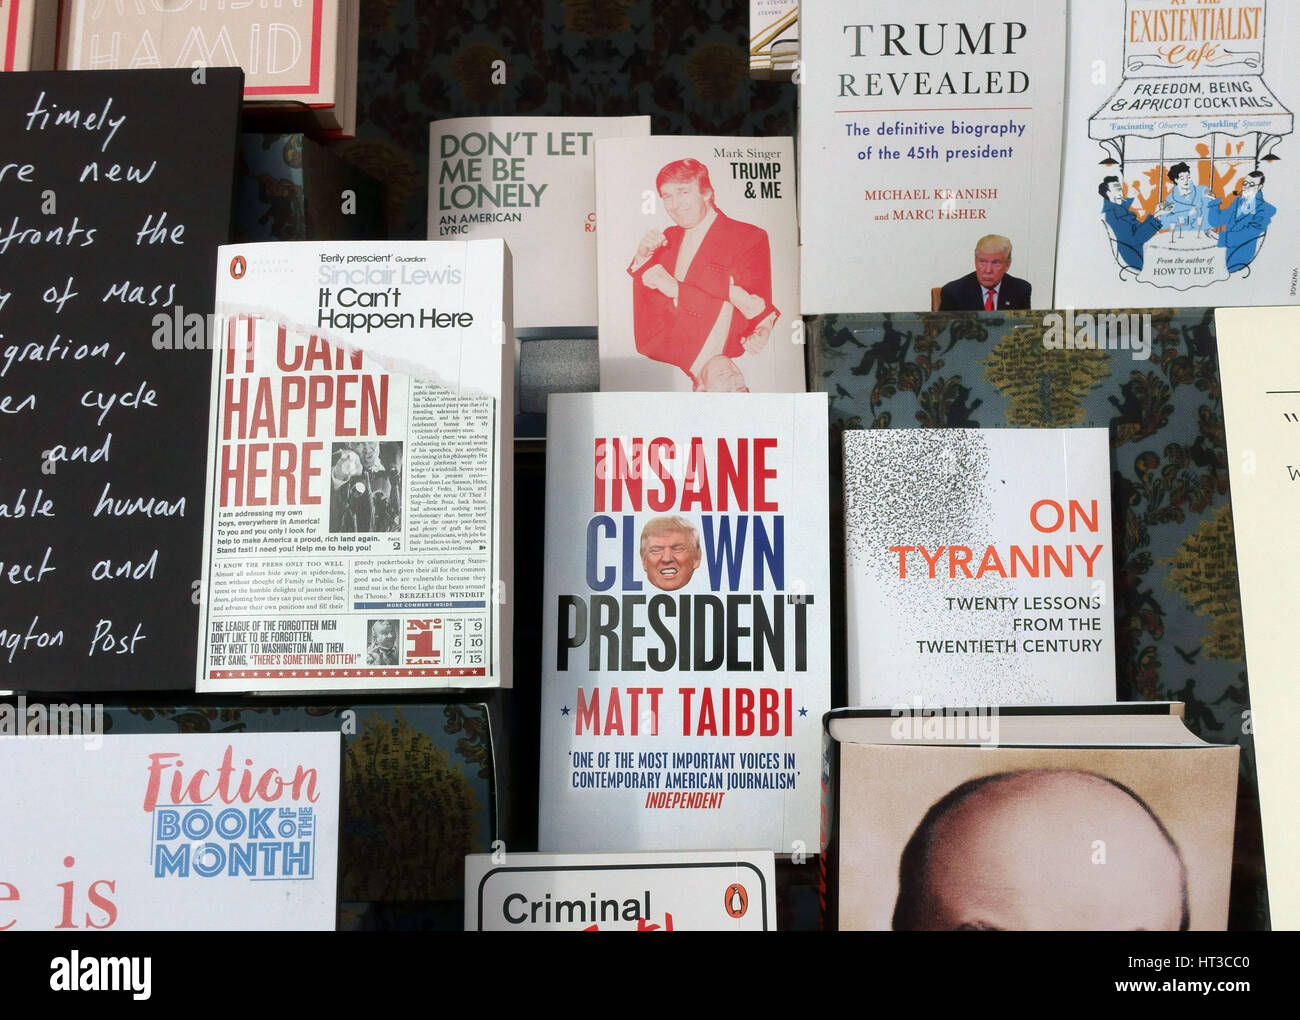 Books about President Donald J Trump in bookshop display, London - Stock Image